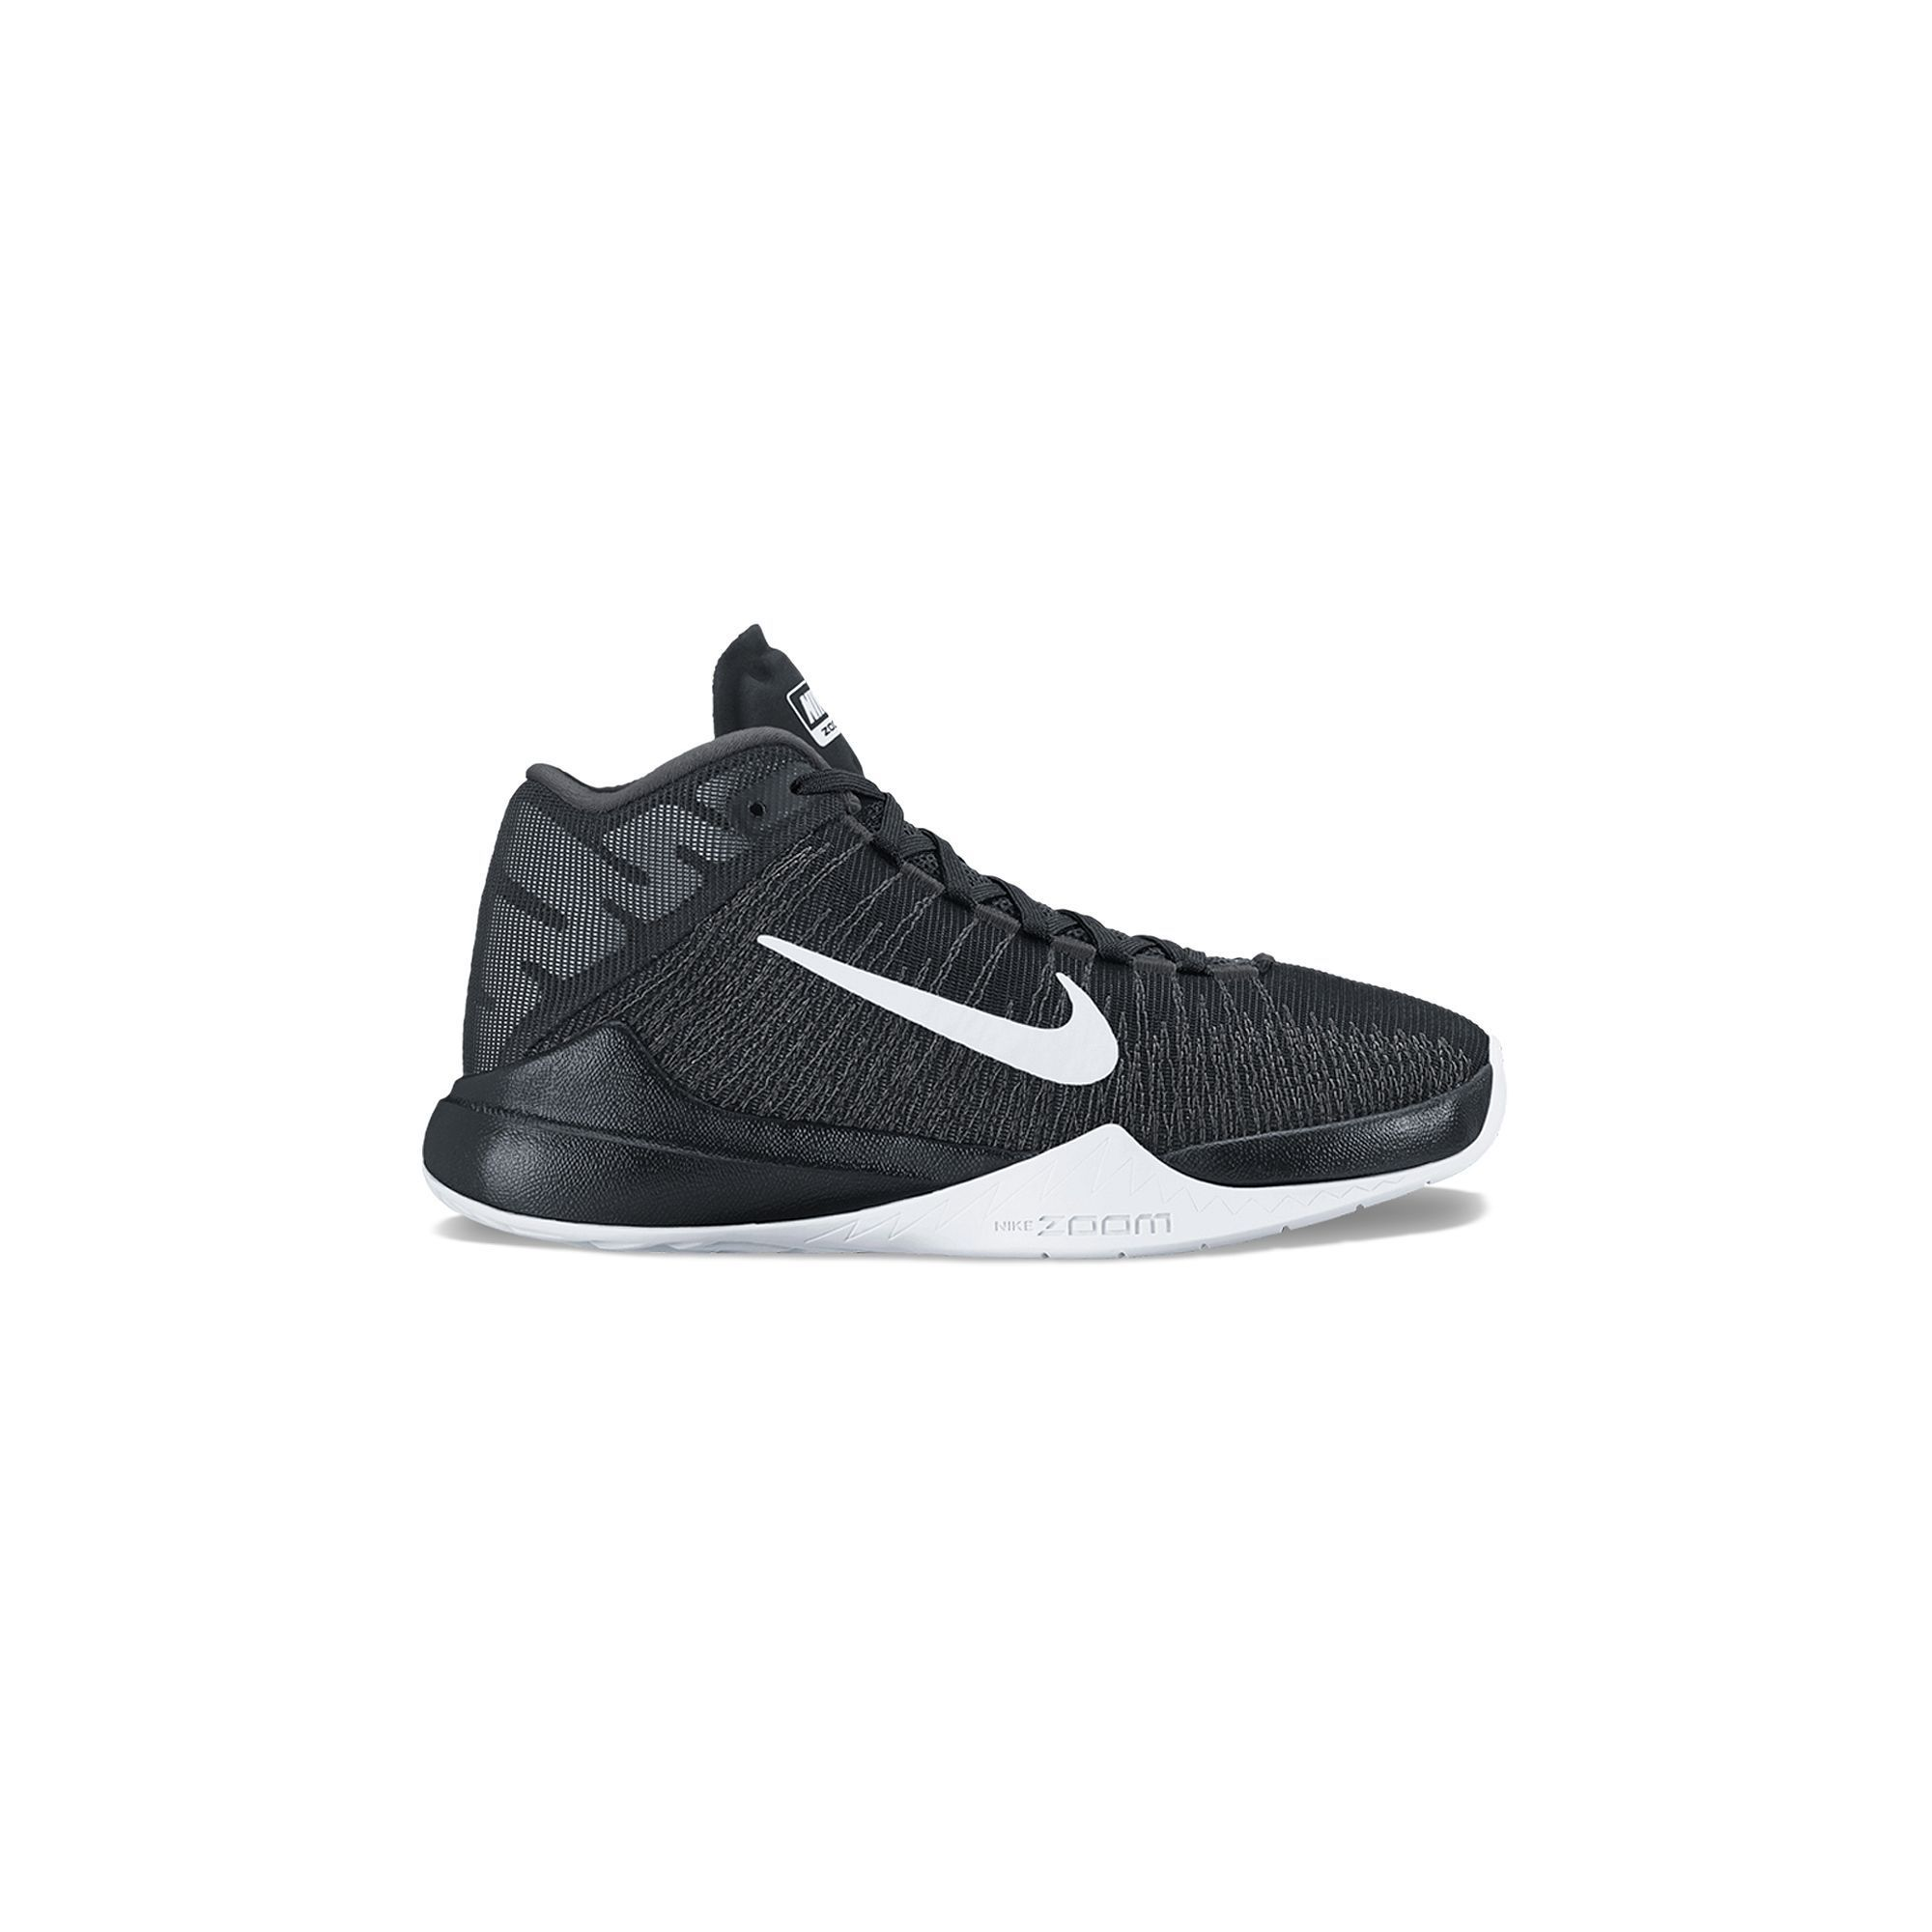 6d8e4607b895a1 Nike Zoom Ascension Men s Basketball Shoes